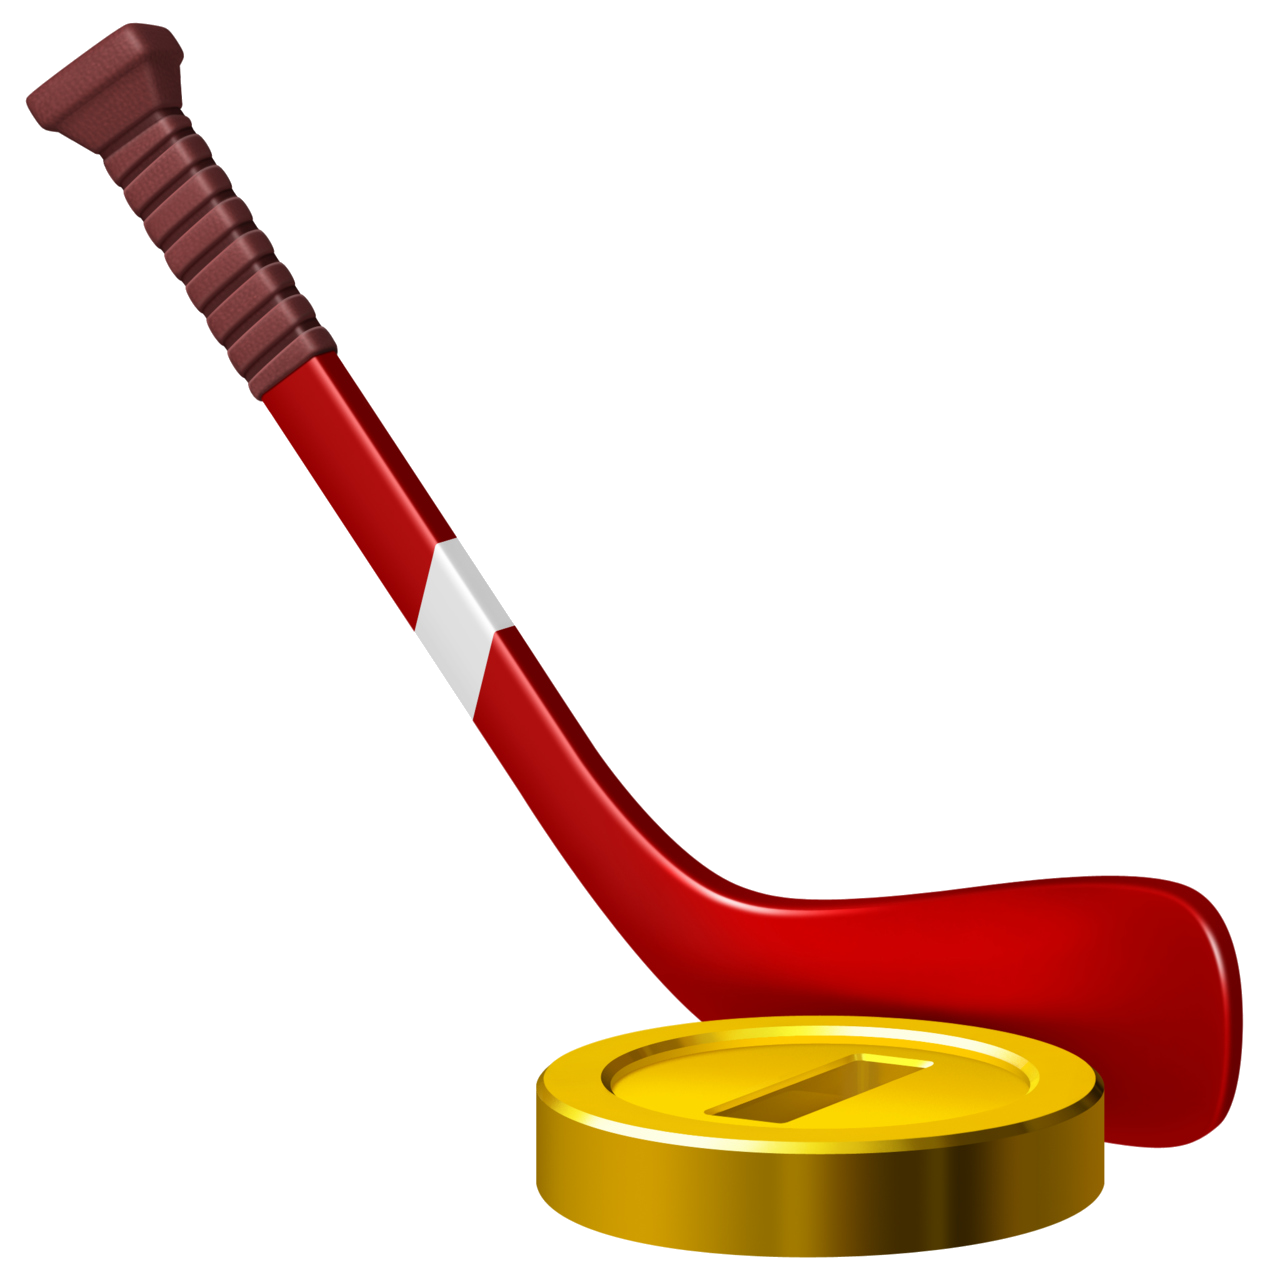 Hockey stick and puck png. Images free download